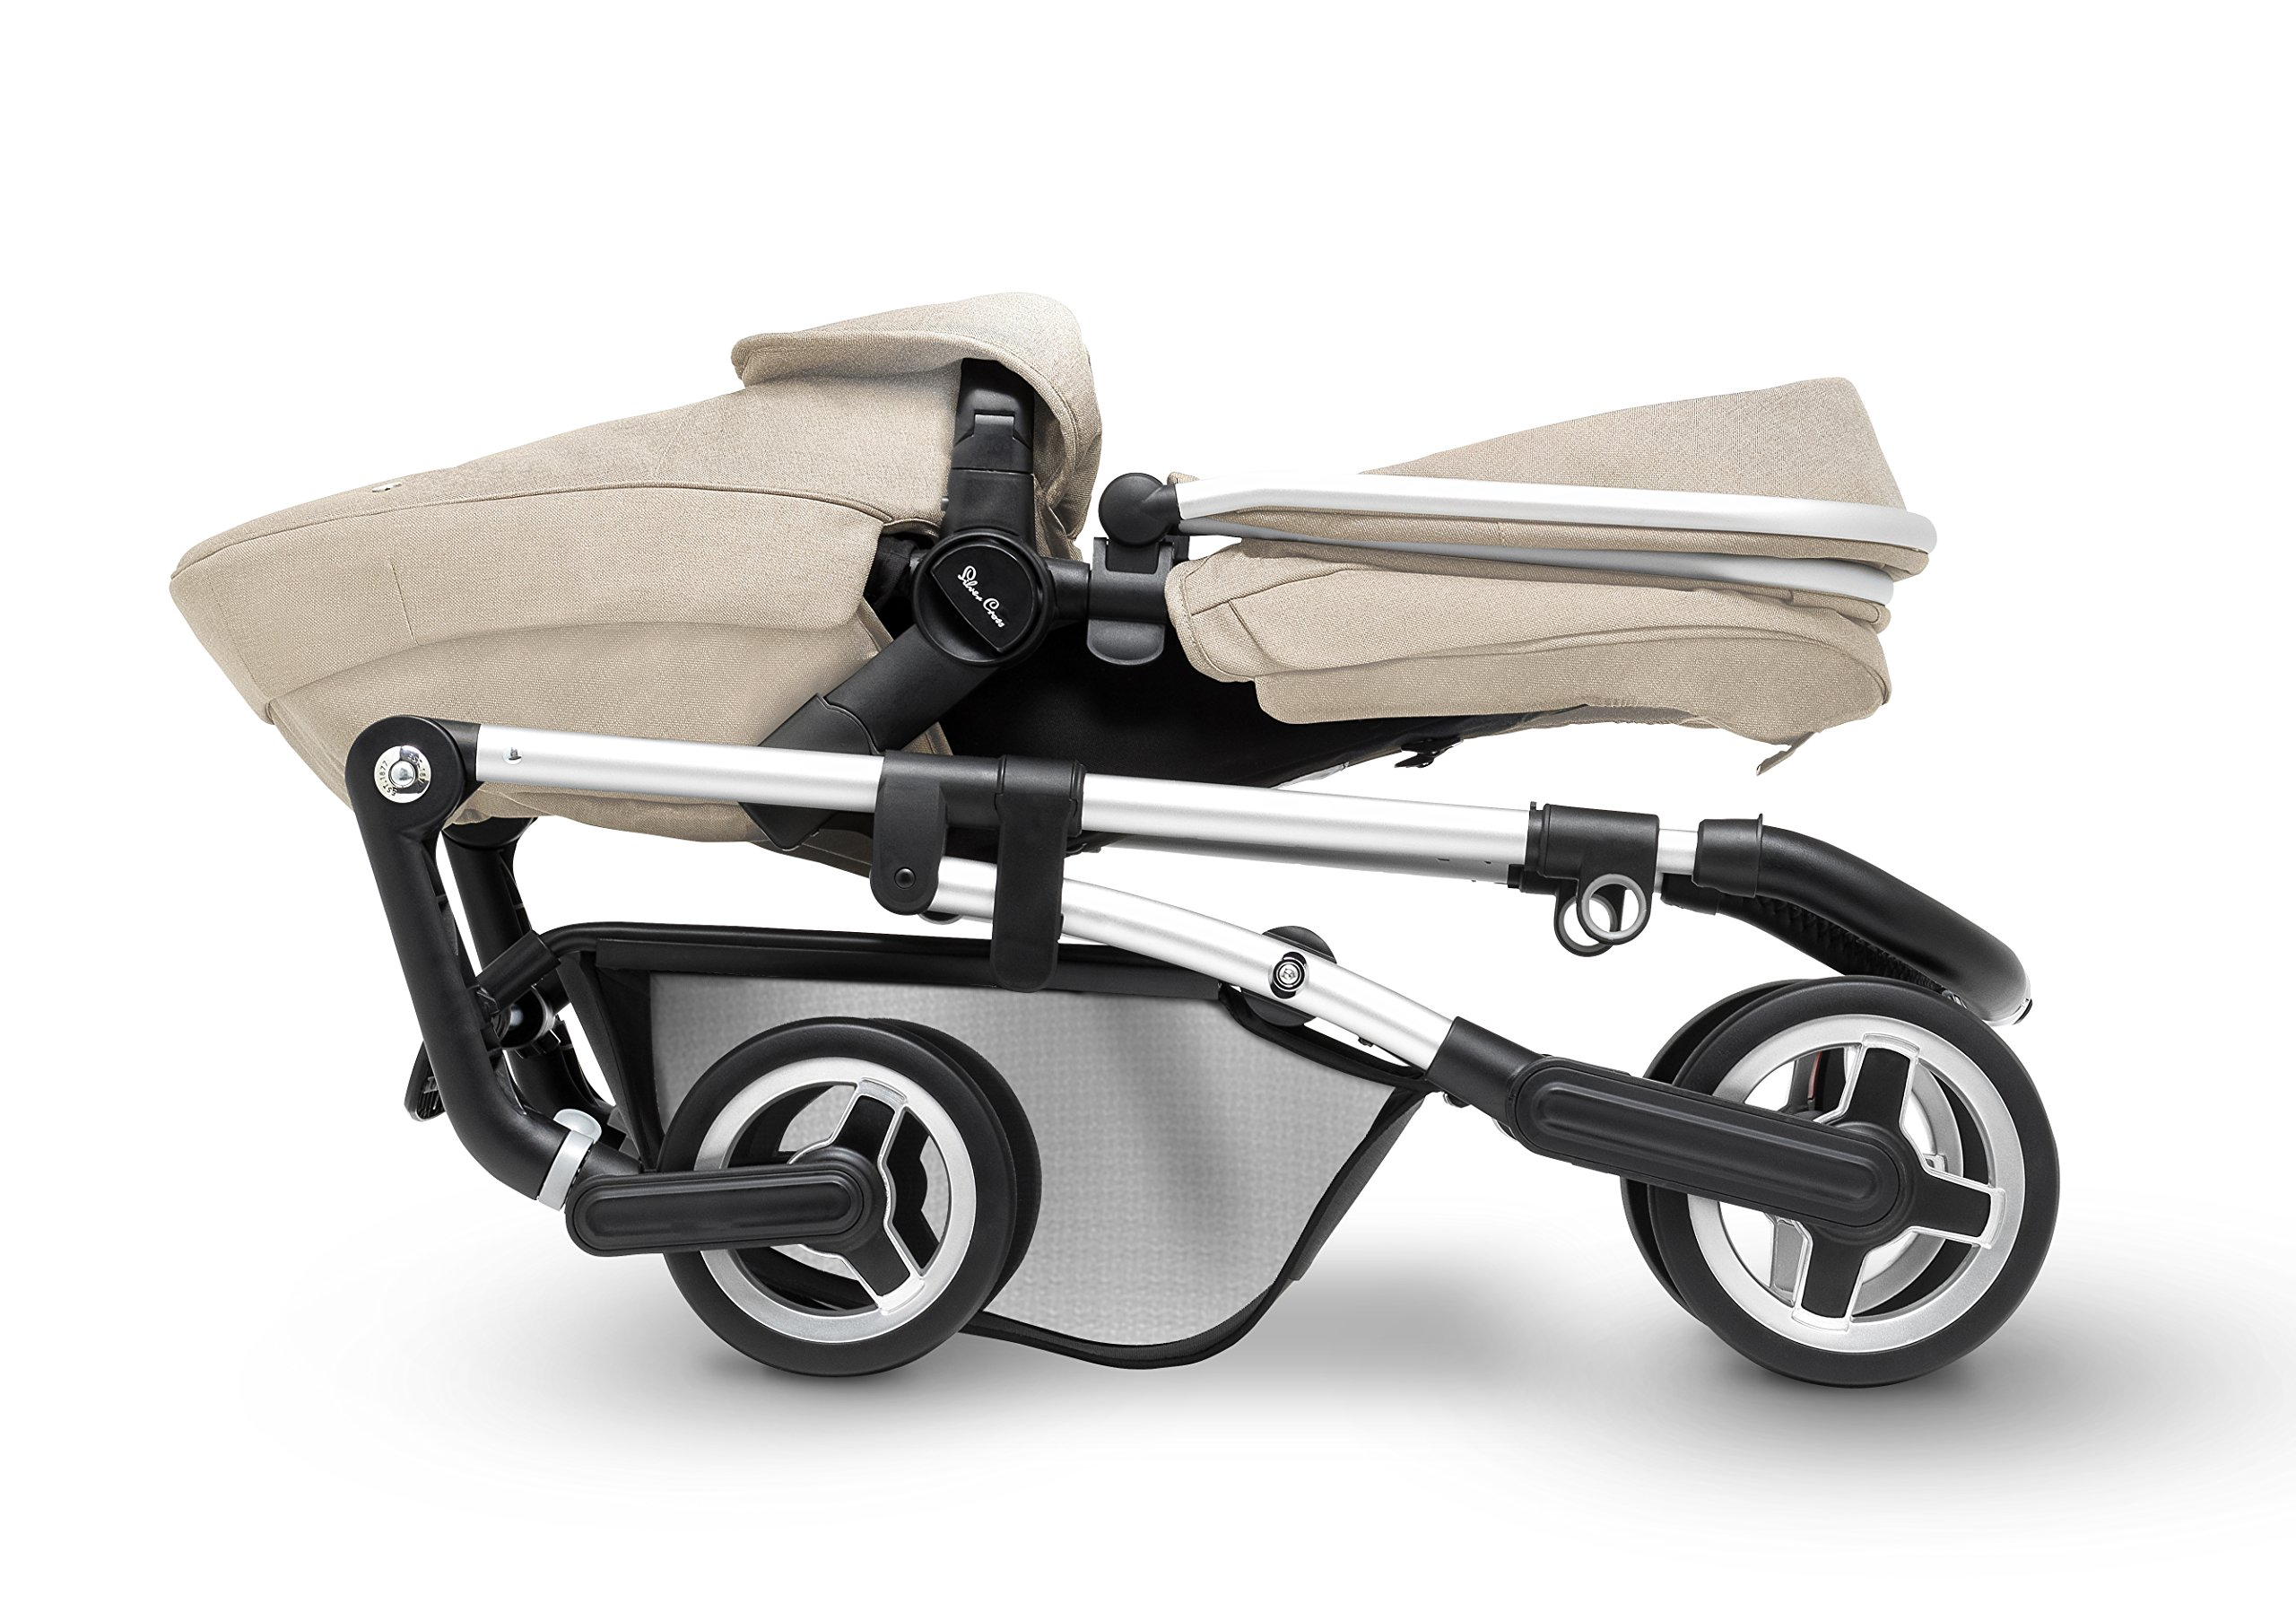 Silver Cross Wayfarer Pushchair and Carrycot, Linen Silver Cross A complete Pram system that includes everything you need from birth to toddler Includes a lie-flat Carrycot for your new born that is suitable for overnight sleeping Includes a fully, reversible Pushchair seat unit, suitable up to 25kg 4